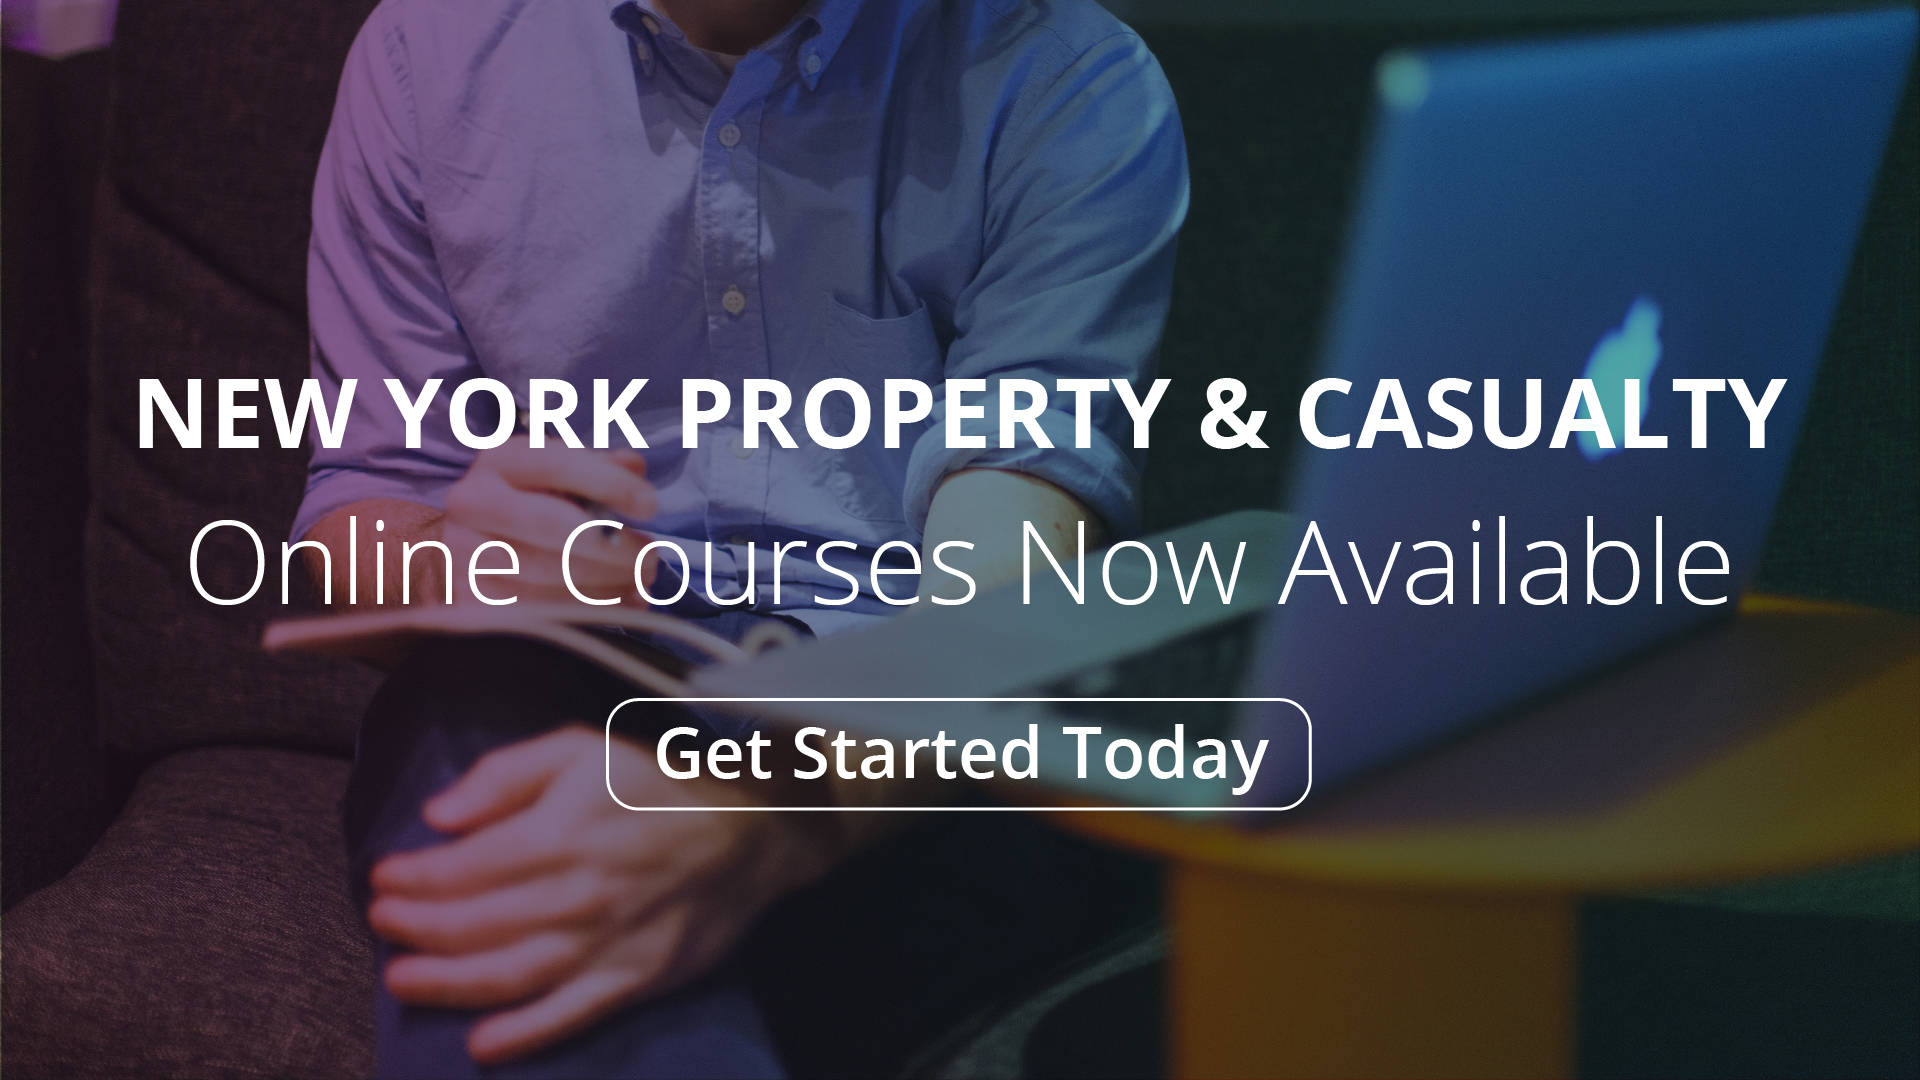 New York Property & Casualty Online Courses Now Available - Get Started Today